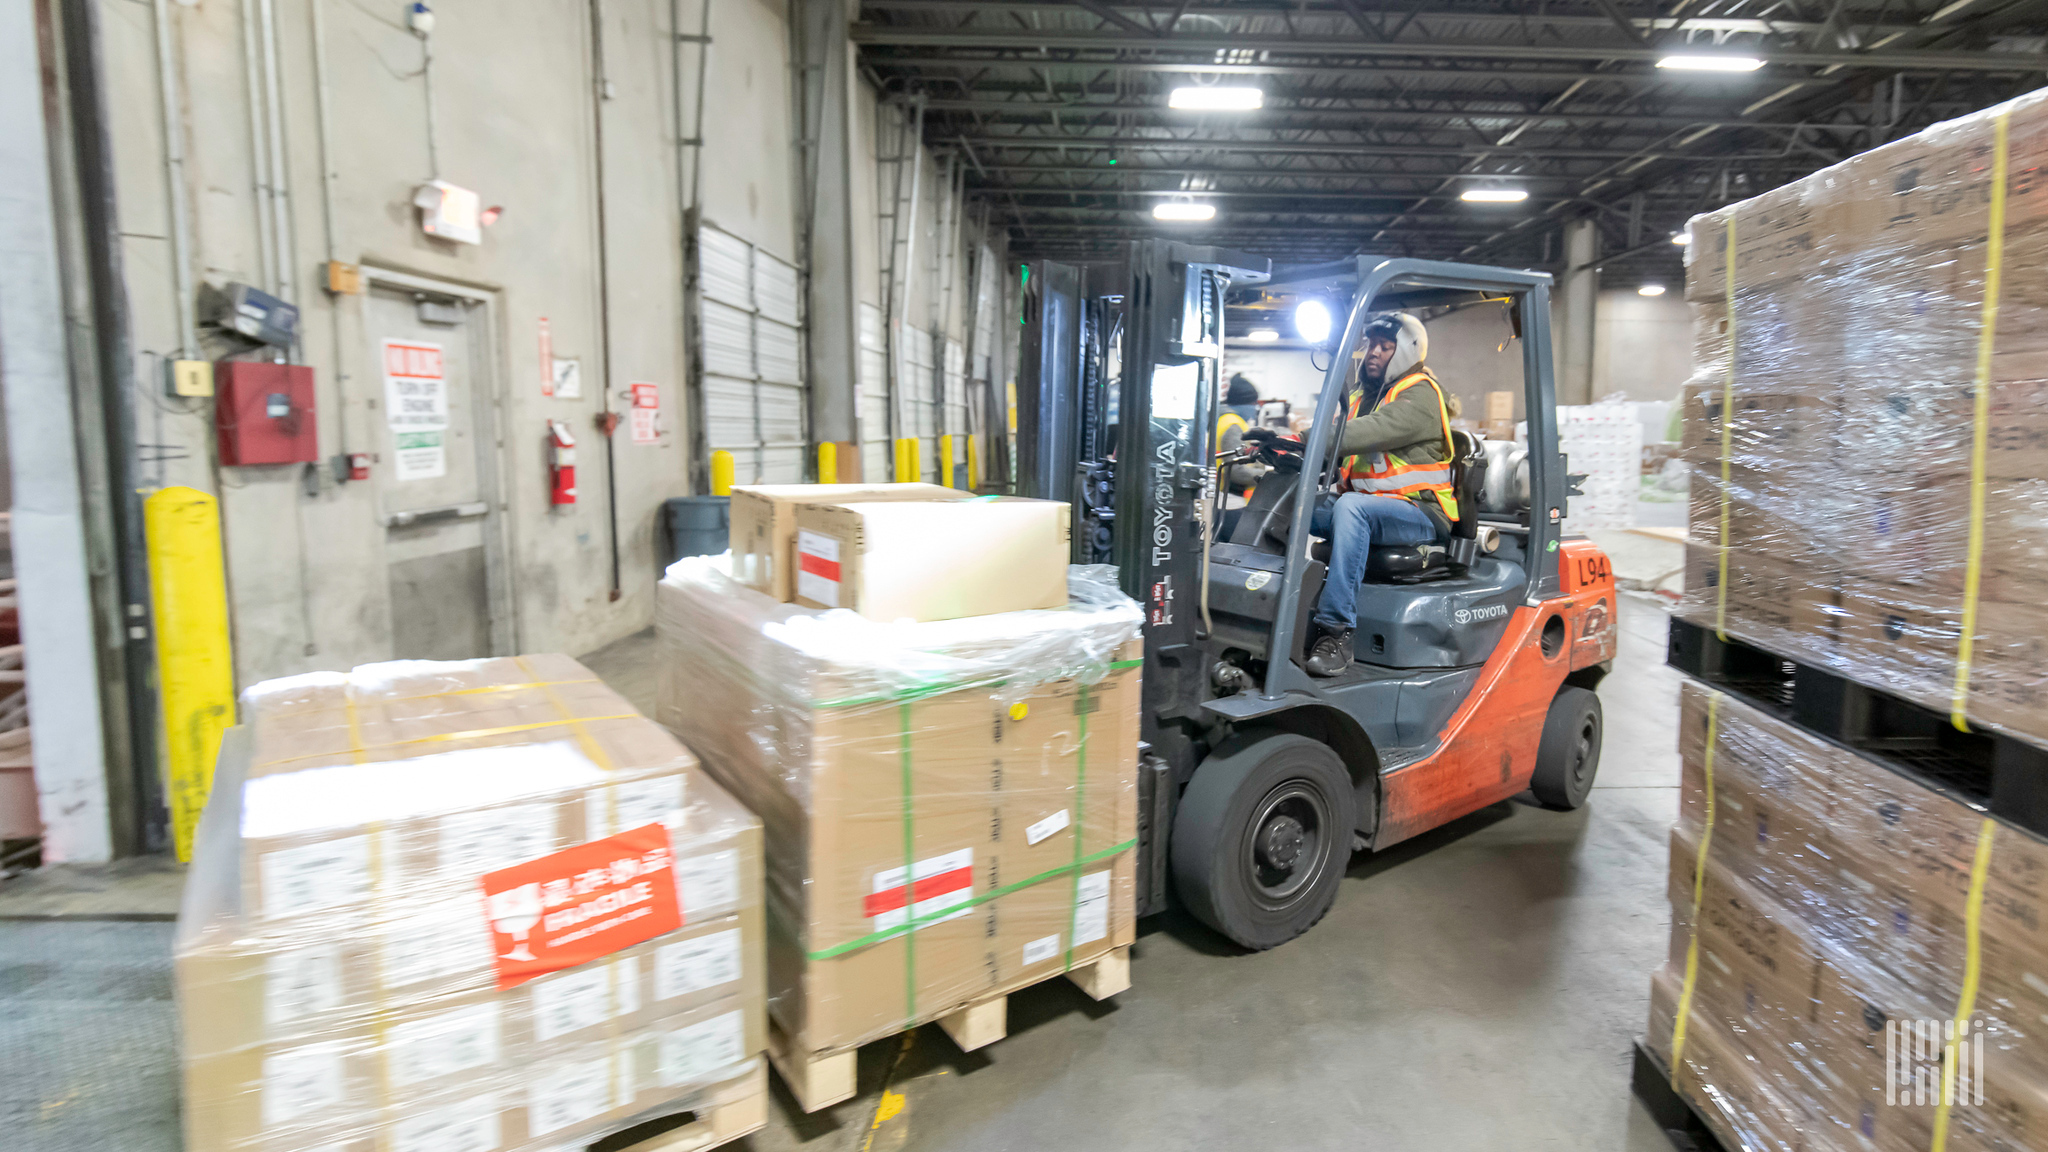 A forklift moves wooden pallets of goods at an airfreight warehouse.